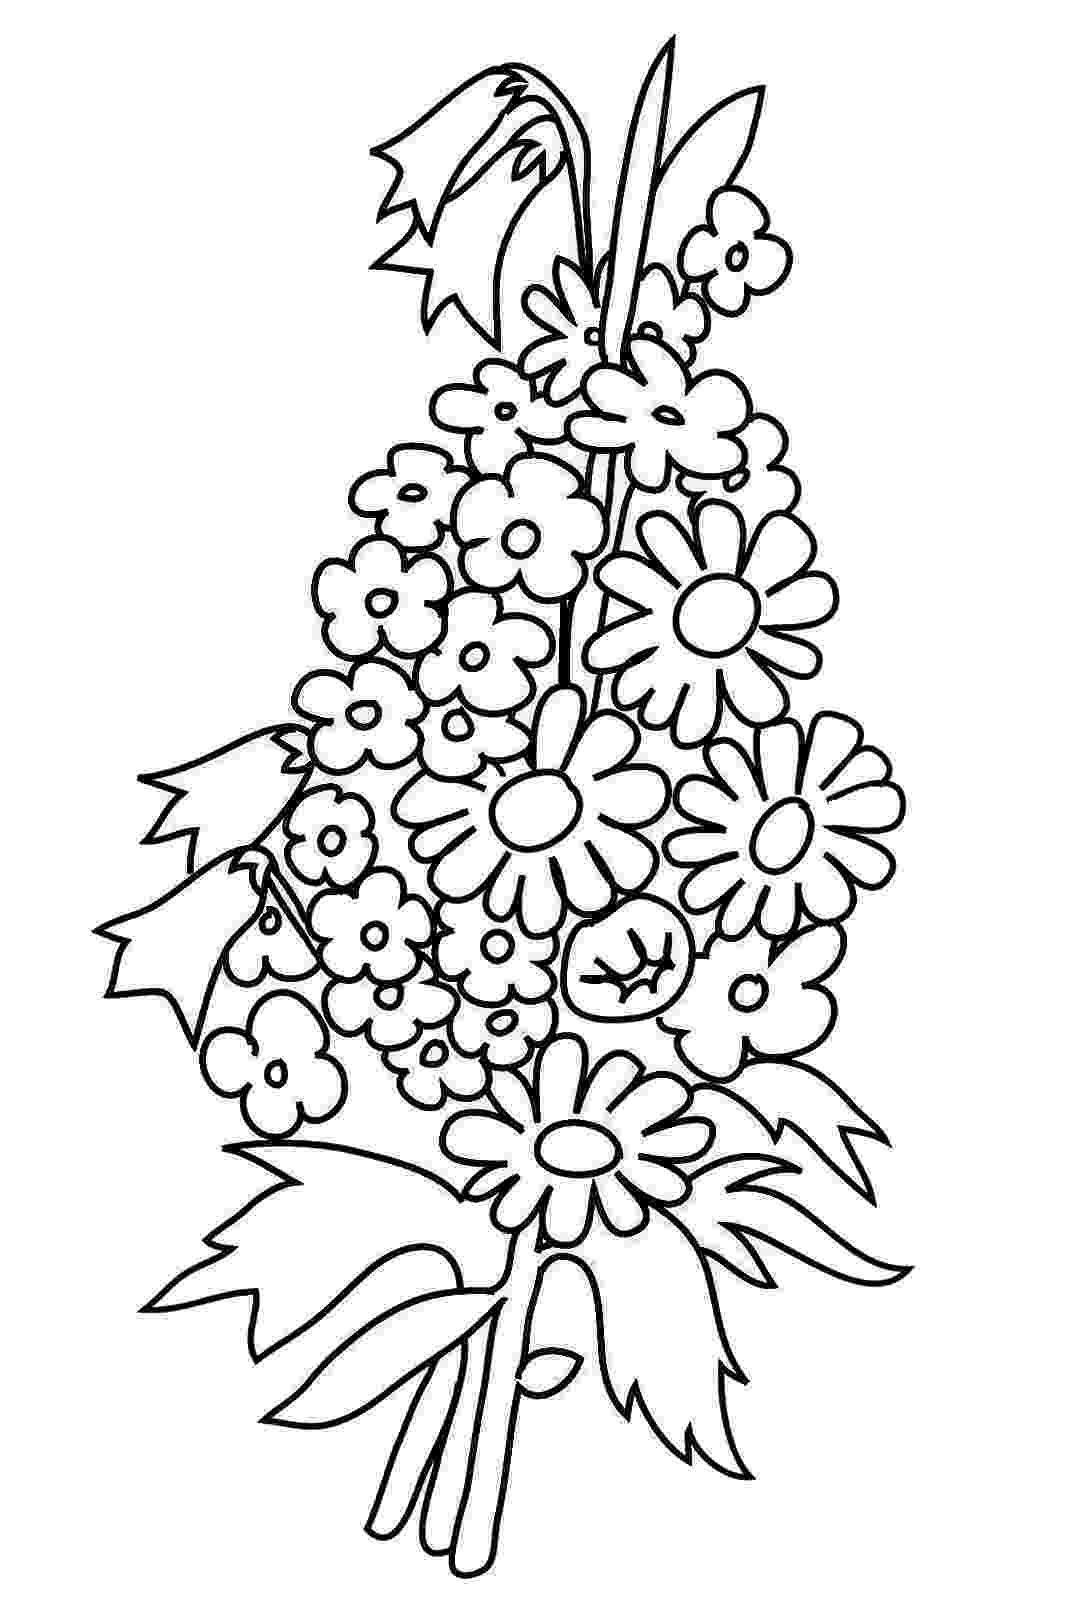 pics of flowers to color free printable flower coloring pages for kids cool2bkids flowers to pics of color